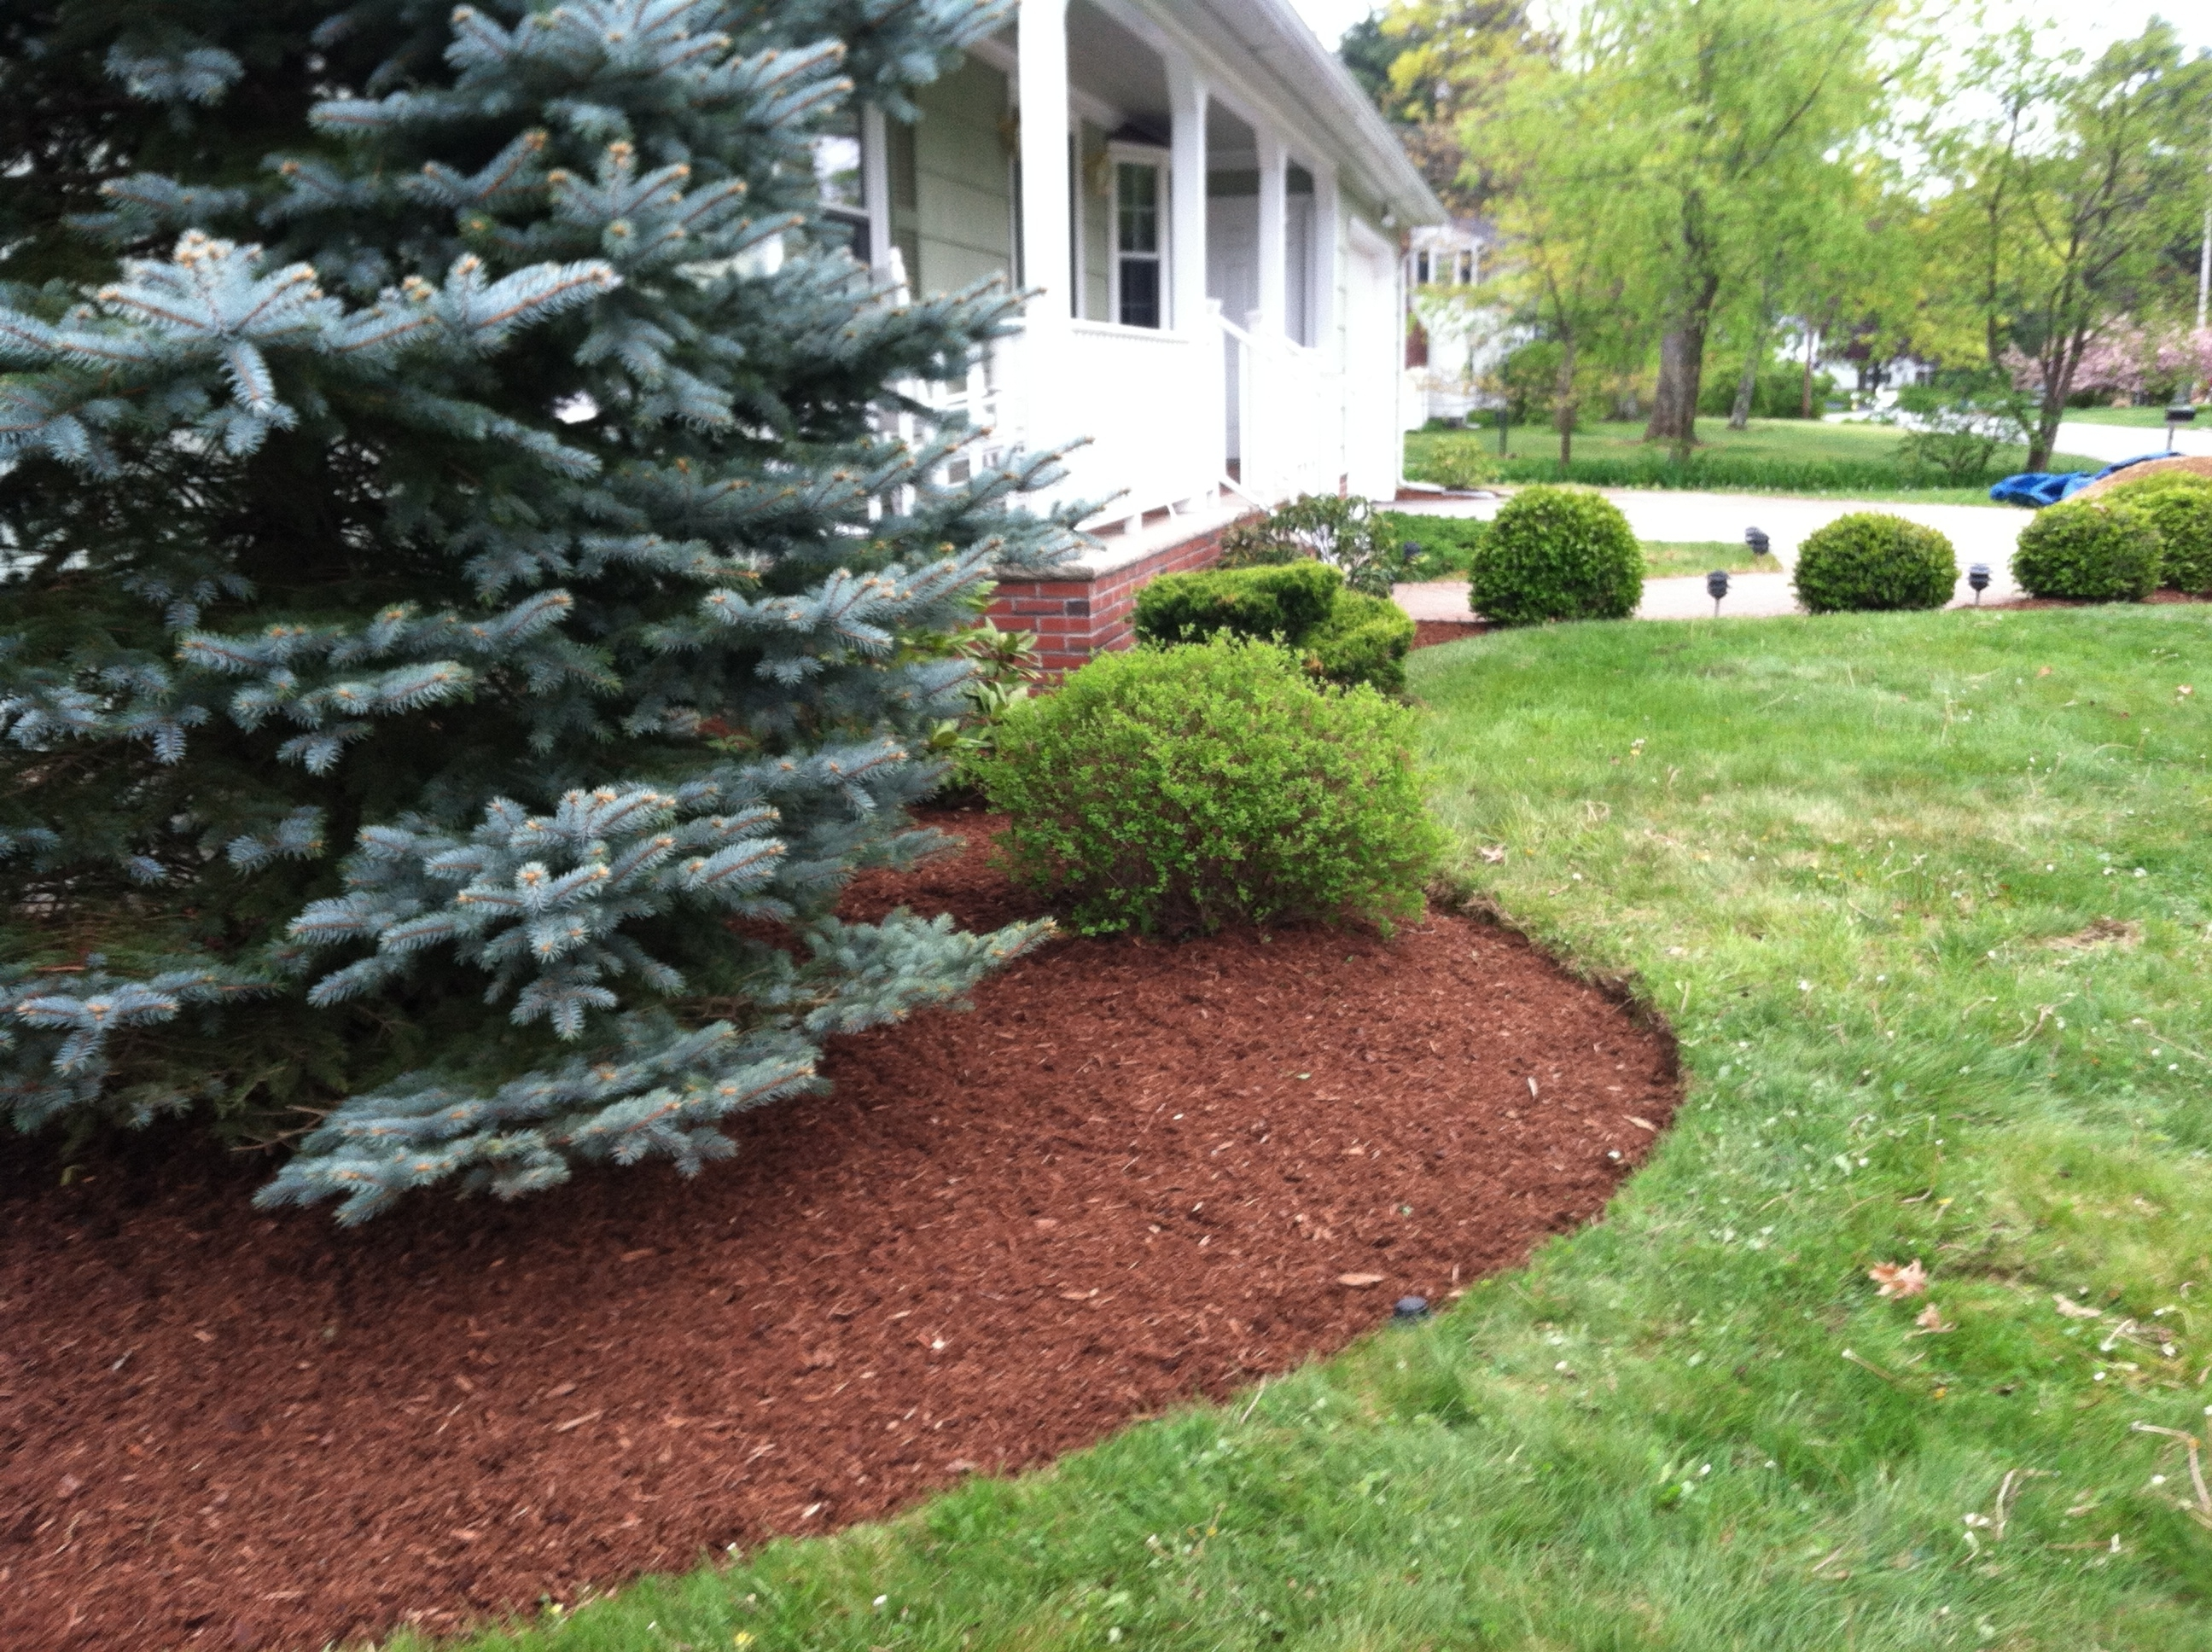 Image of: Bark Mulch For A Beautiful Yard In Nh Spring Landscaping Services Regarding Landscaping Bark Landscaping Bark For Season